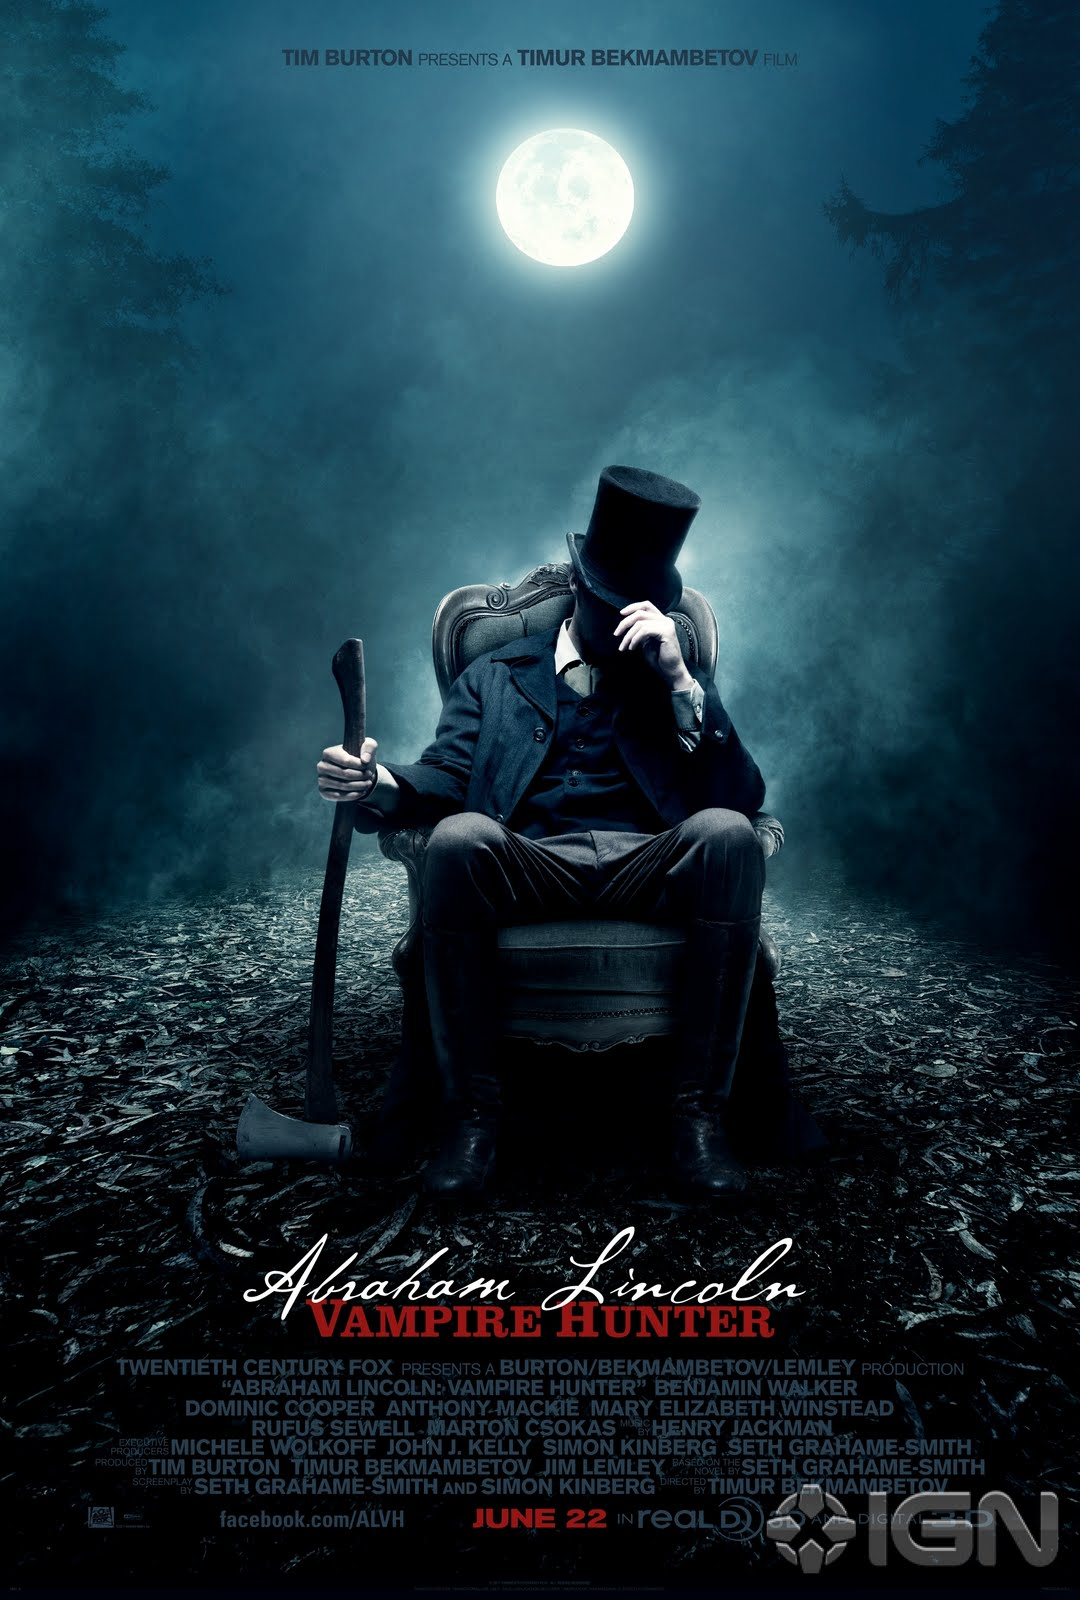 synopsis of abraham lincoln vampire hunter Nonton film the abraham lincoln: vampire hunter (2012) bluray 480p & 720p mp4 mkv hindi english subtitle indonesia watch online free streaming full hd movie download - plot synopsis abraham lincoln: vampire hunter 2012 : at the age of 9, abraham lincoln witnesses his mother being killed by a vampire, jack barts.